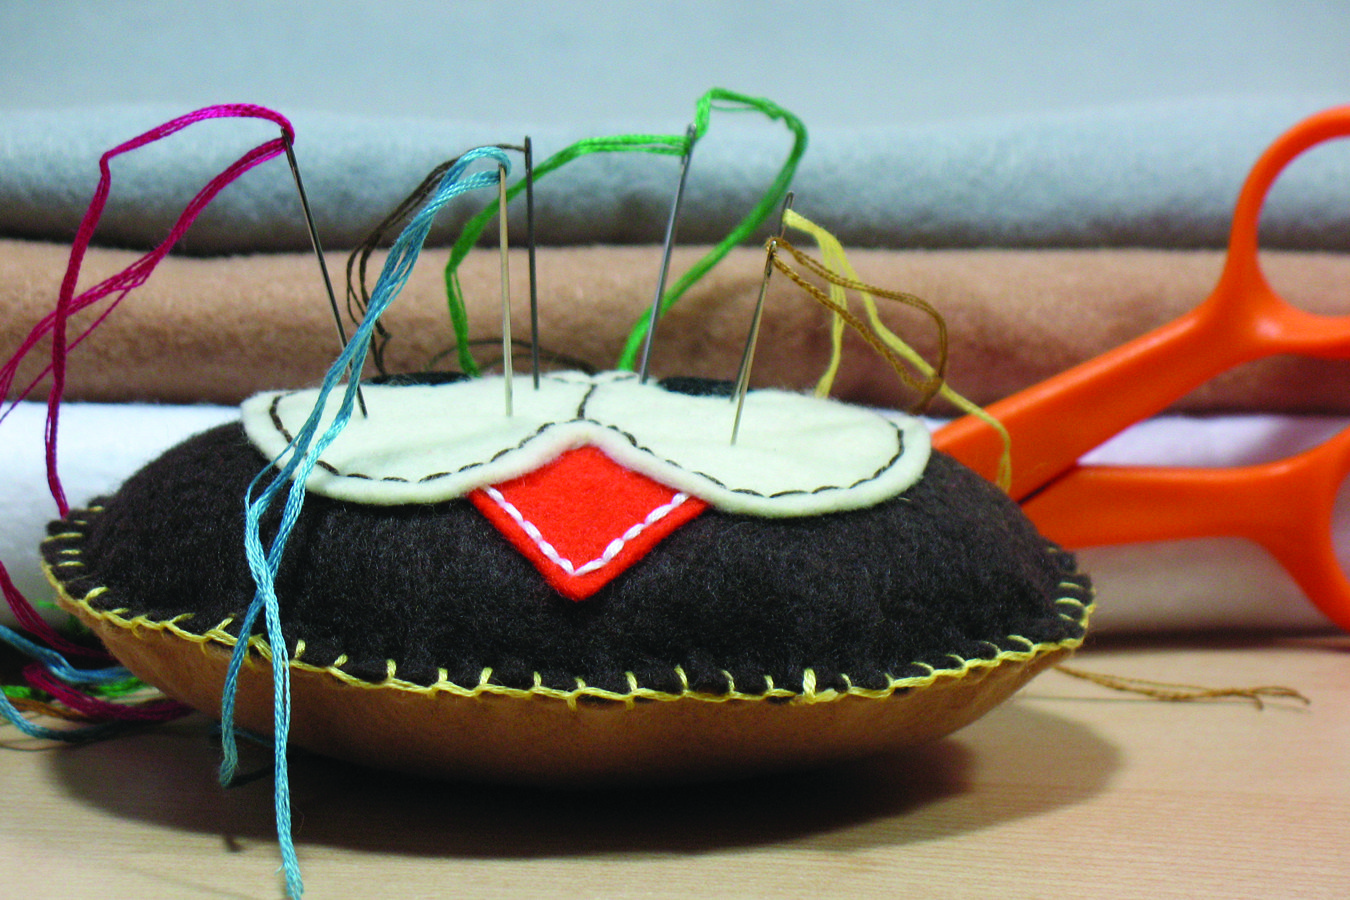 embroidery needles in pin cushion